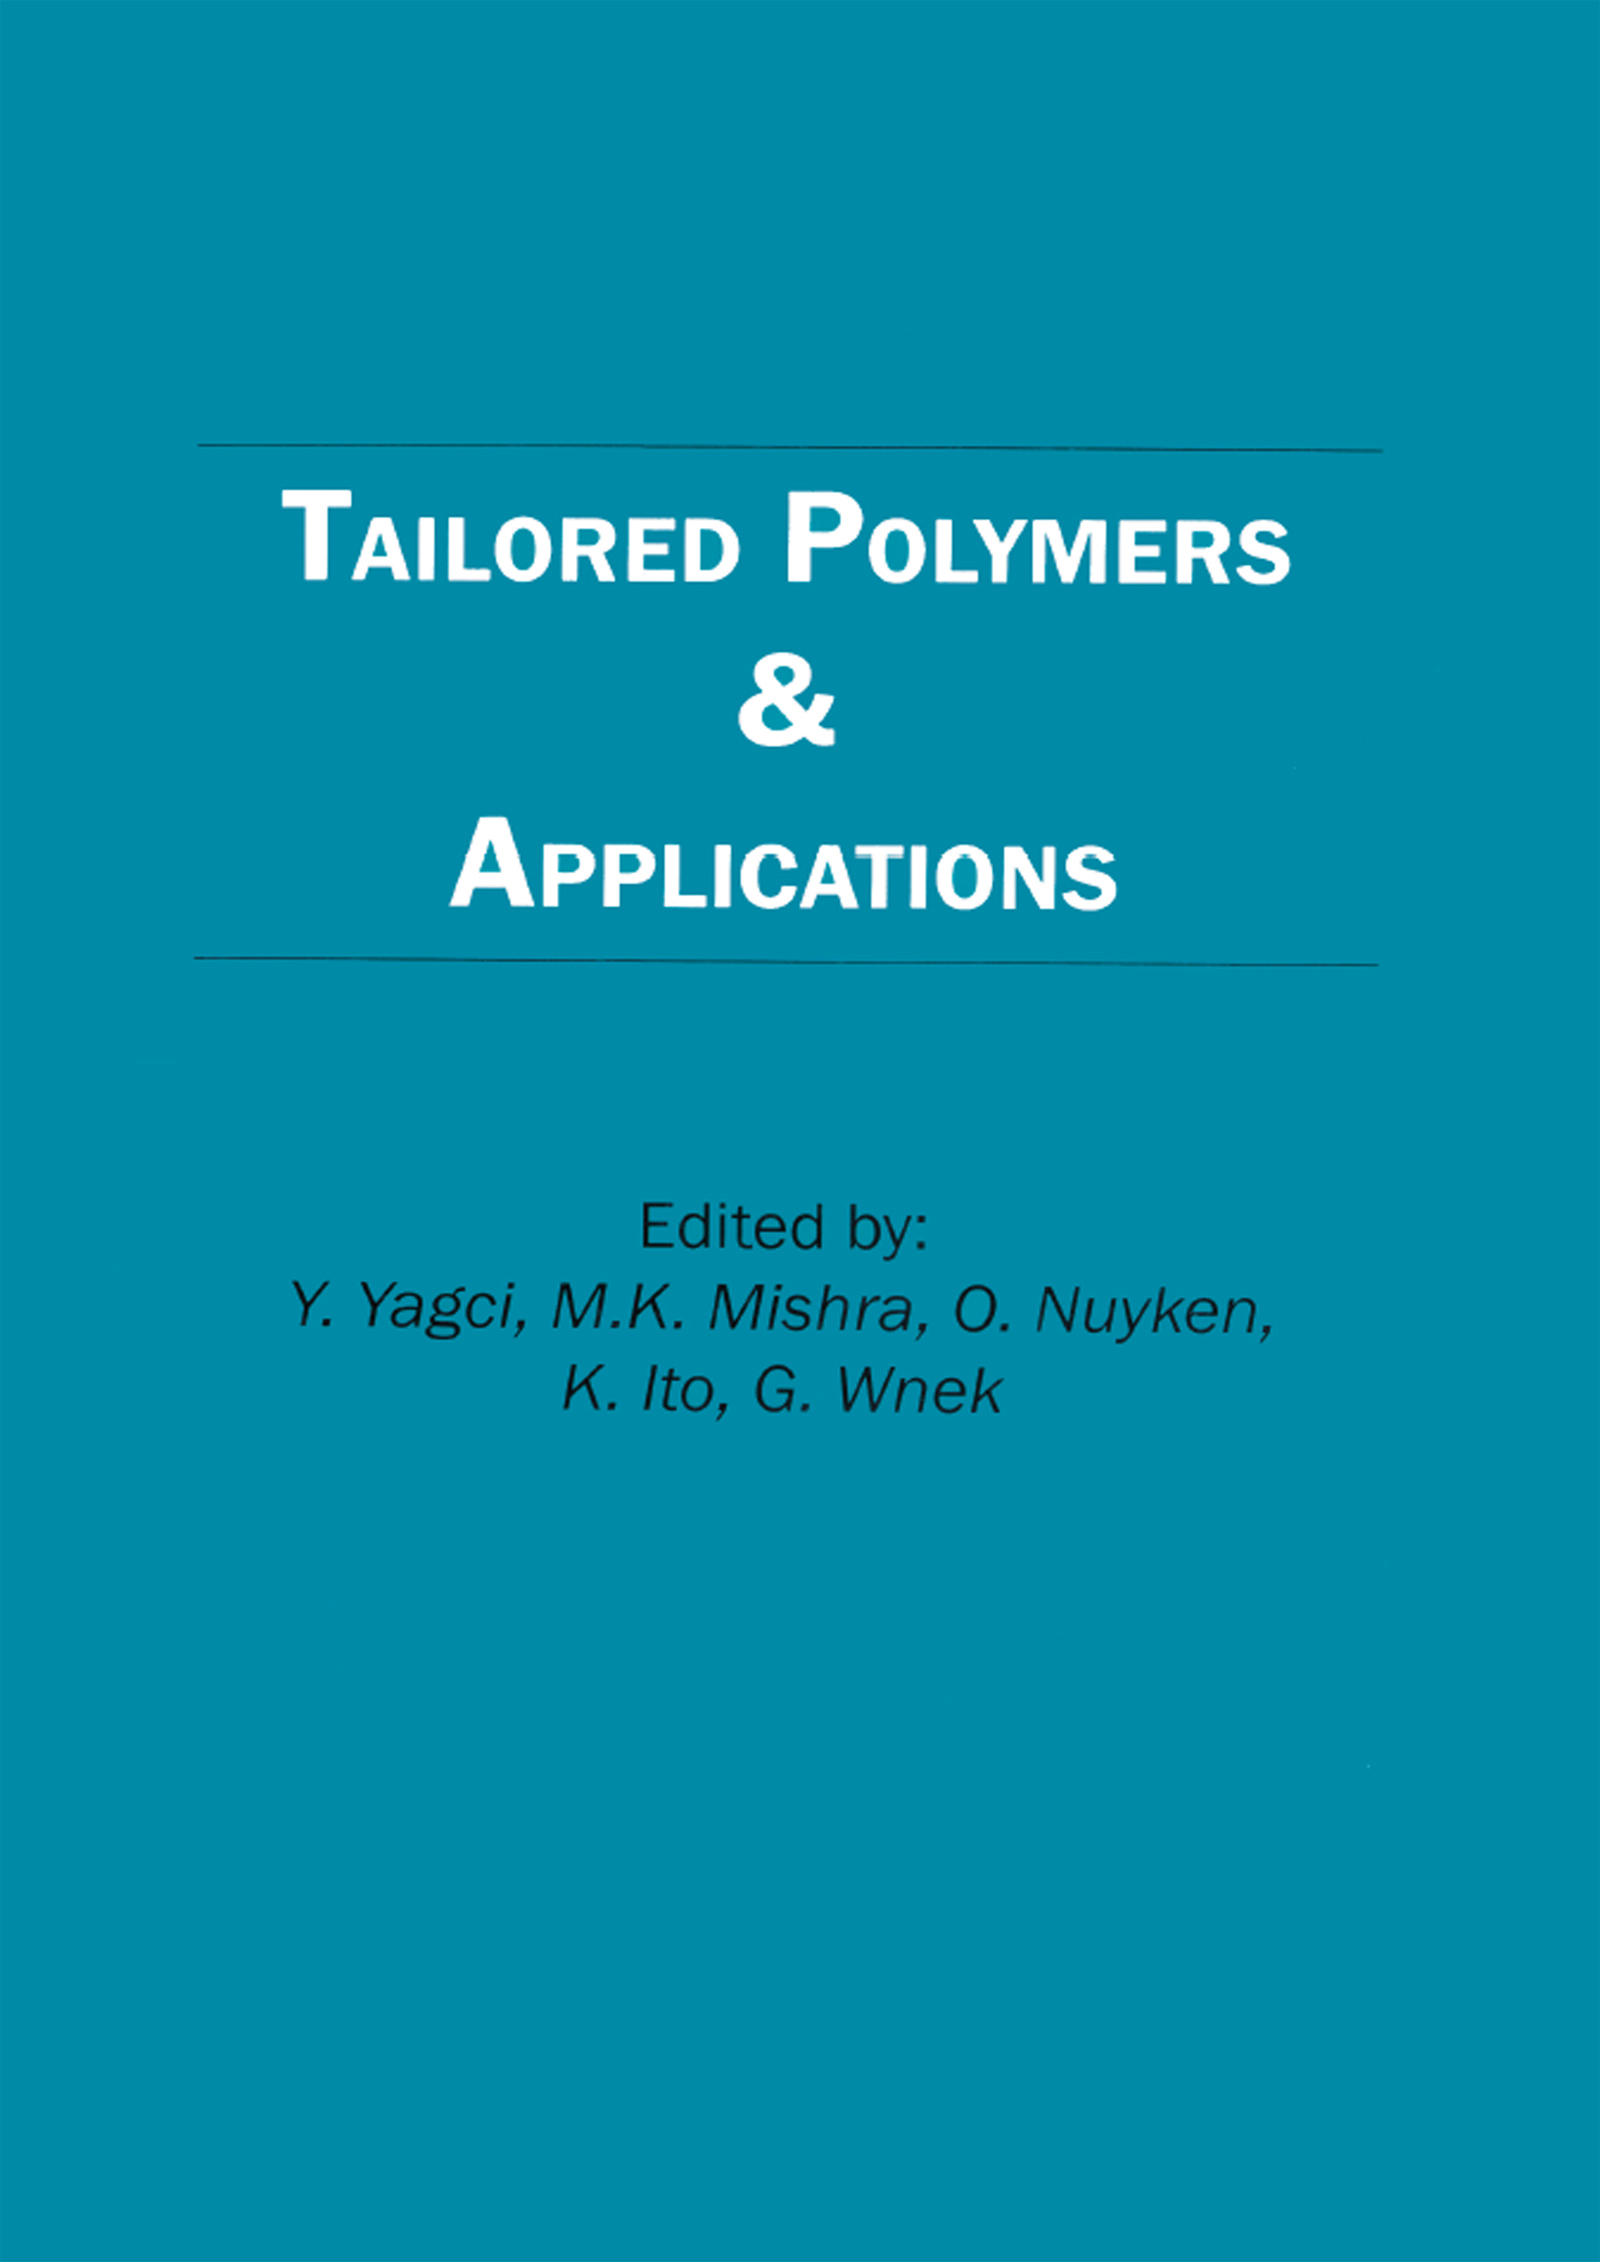 Tailored Polymers and Applications